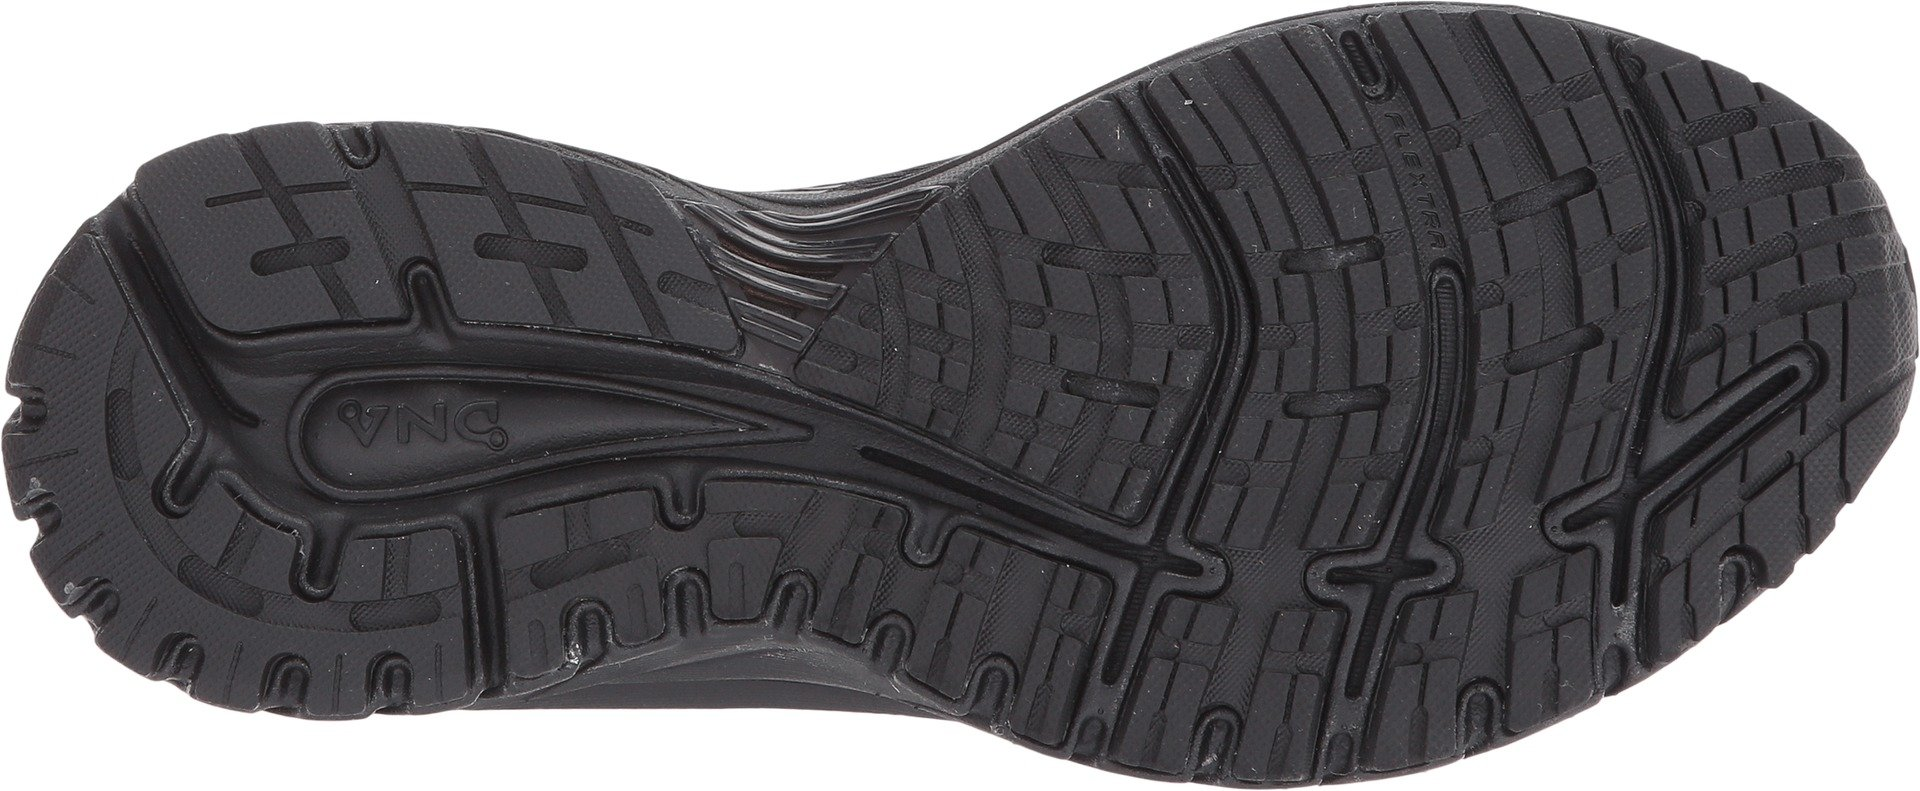 Brooks Women's Adrenaline GTS 18 Black/Black 7.5 B US by Brooks (Image #3)